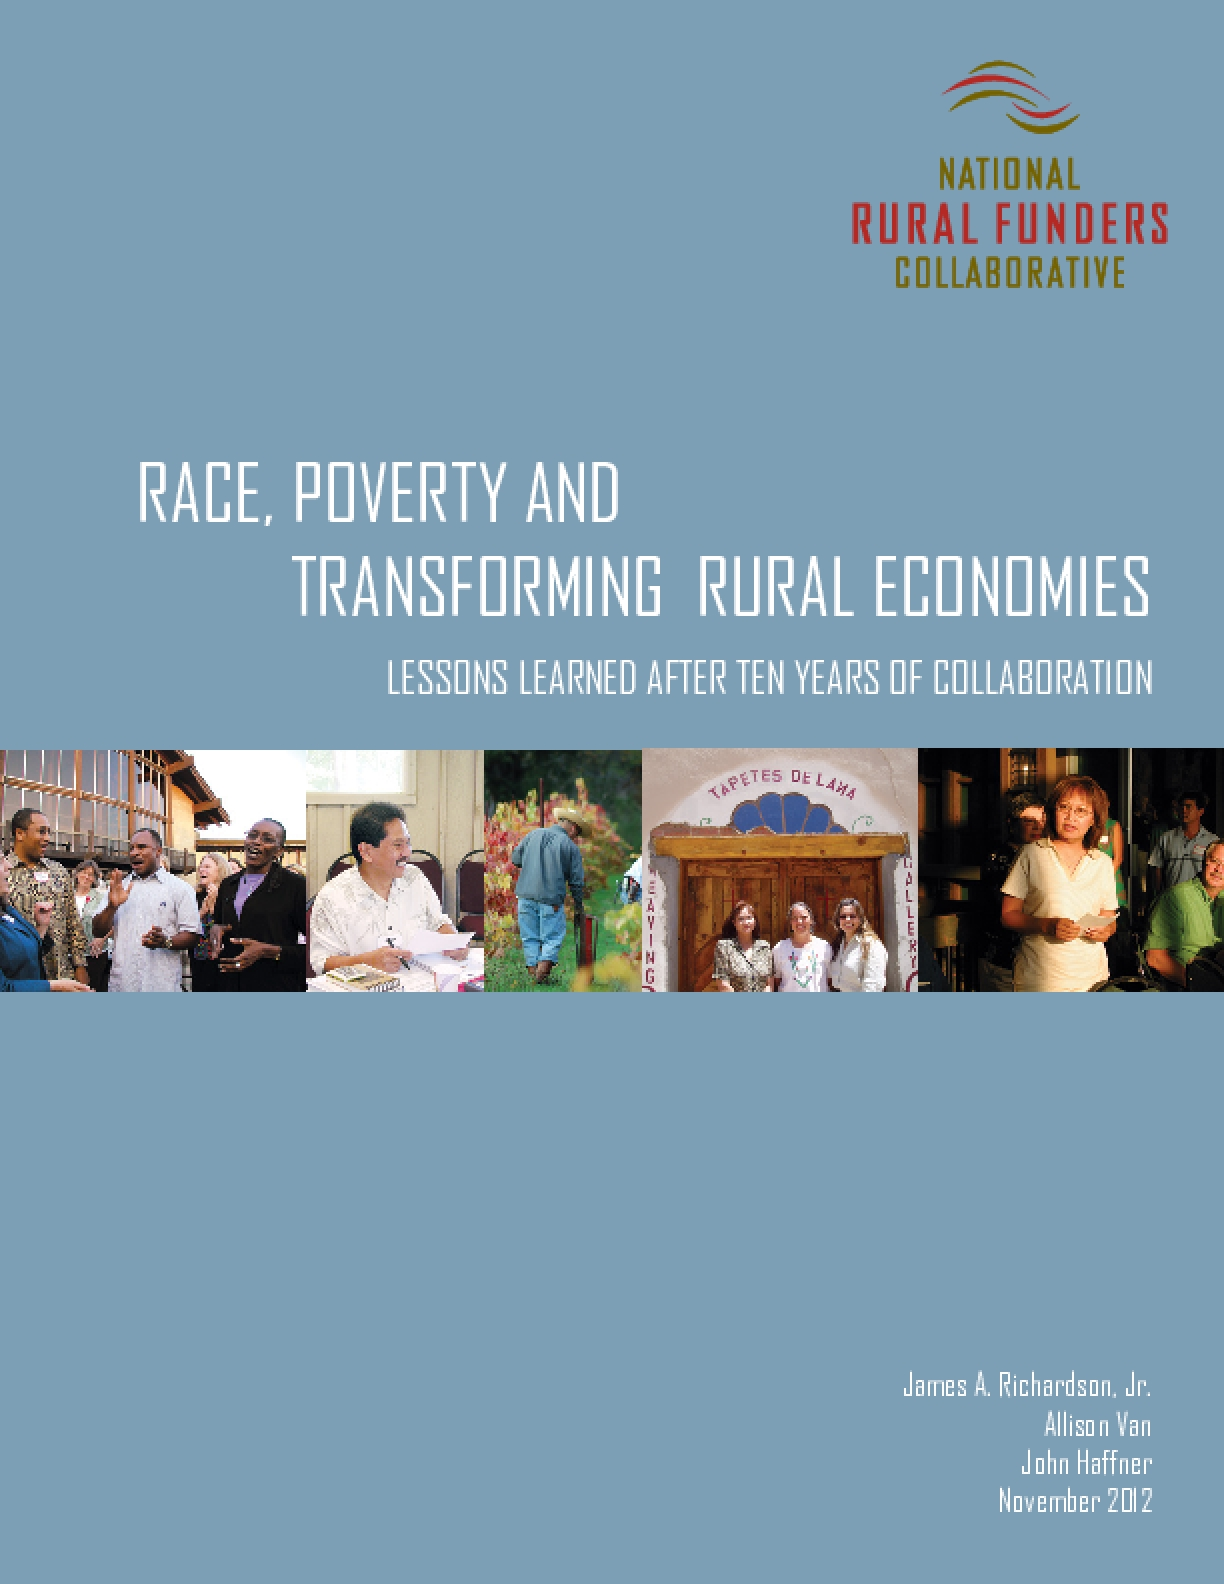 Race, Poverty and Transforming Rural Economies